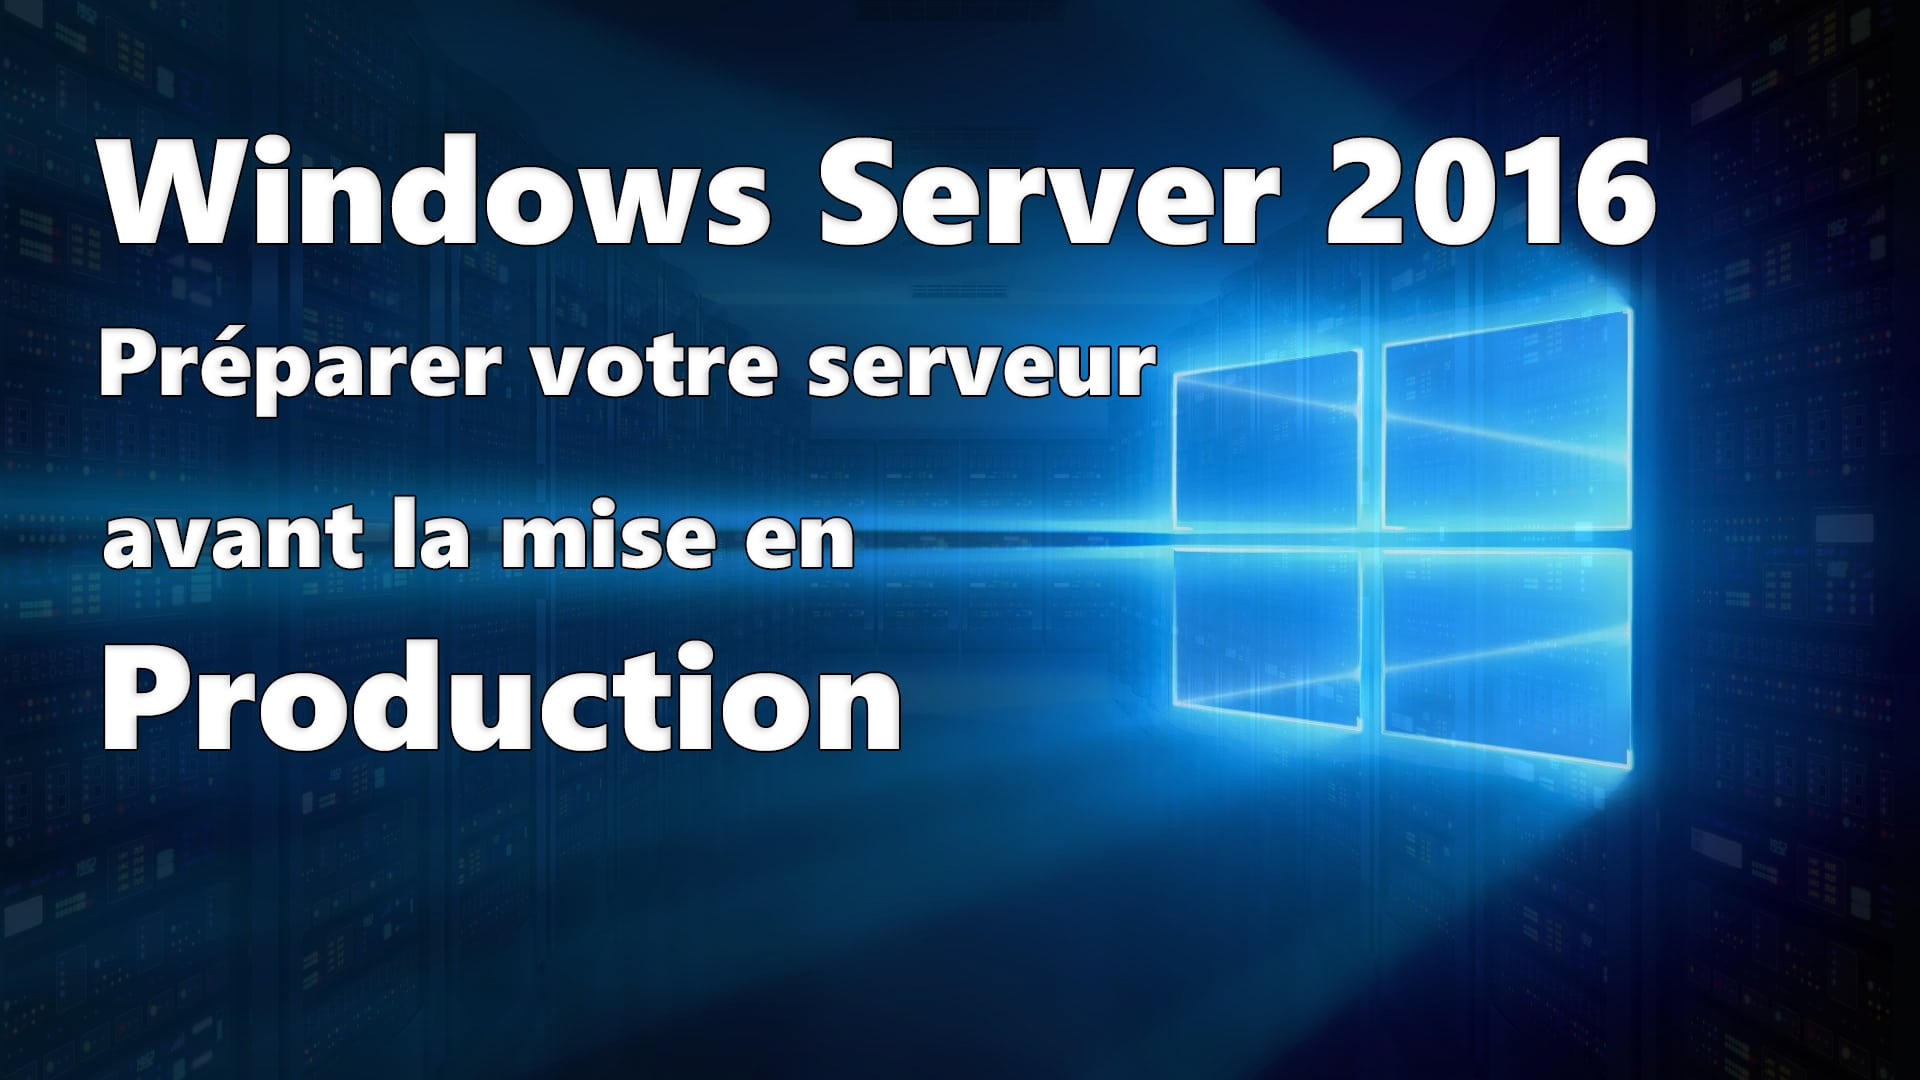 Photo of Windows Server 2016 : Les basiques avant l'installation d'un rôle